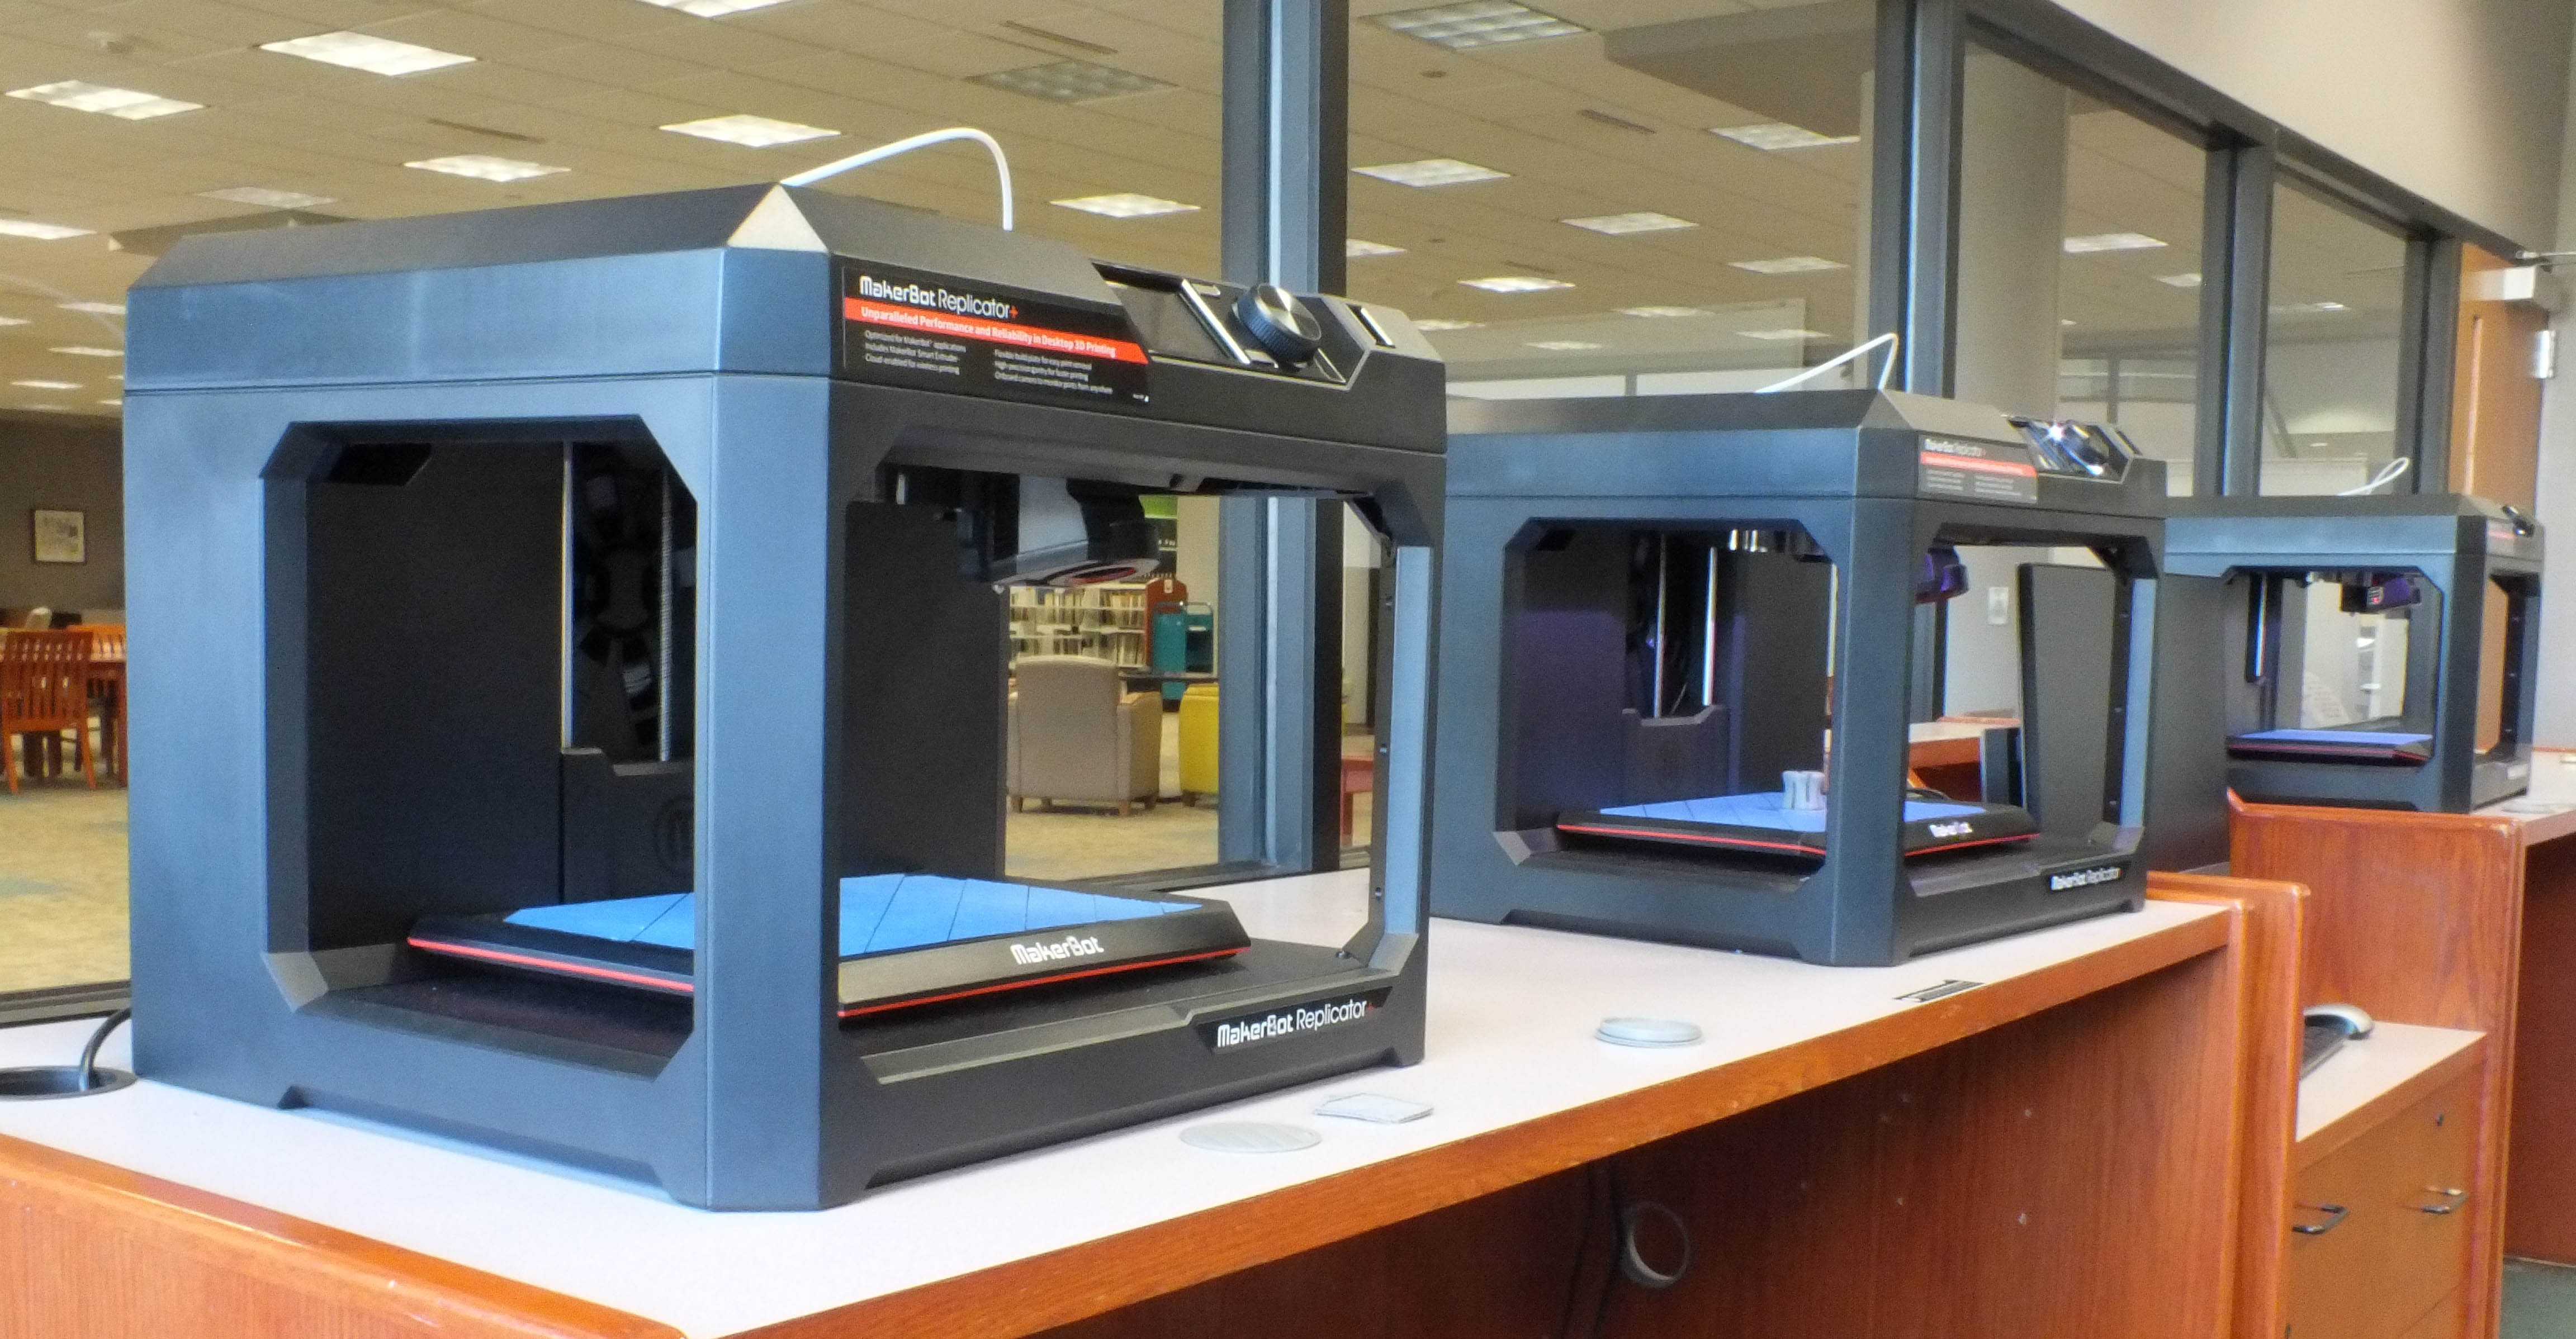 Three Makerbot Replicator+ 3D Printers